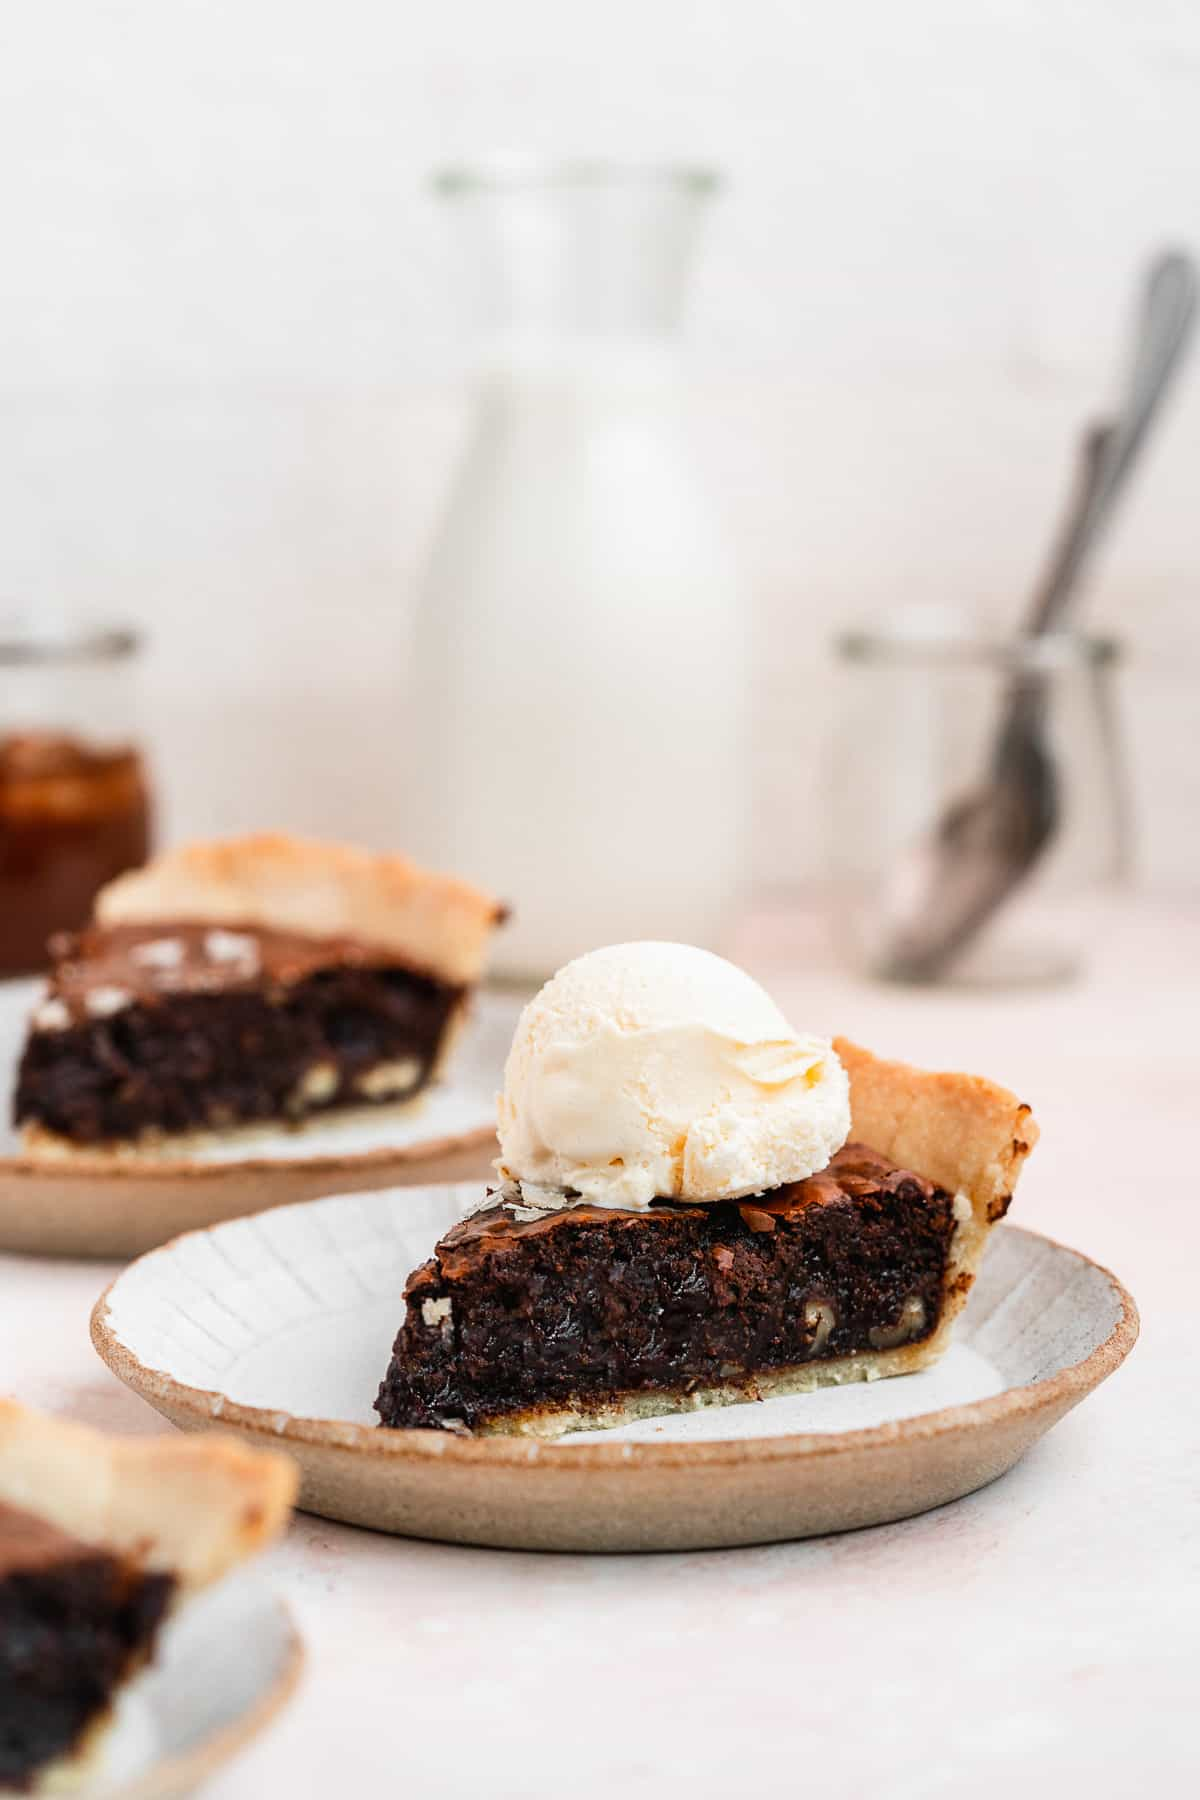 Side close up of a single pie slice on a small grey plate served a la mode with a scoop of vanilla ice cream on top.   Additional slices are on plates in the background.